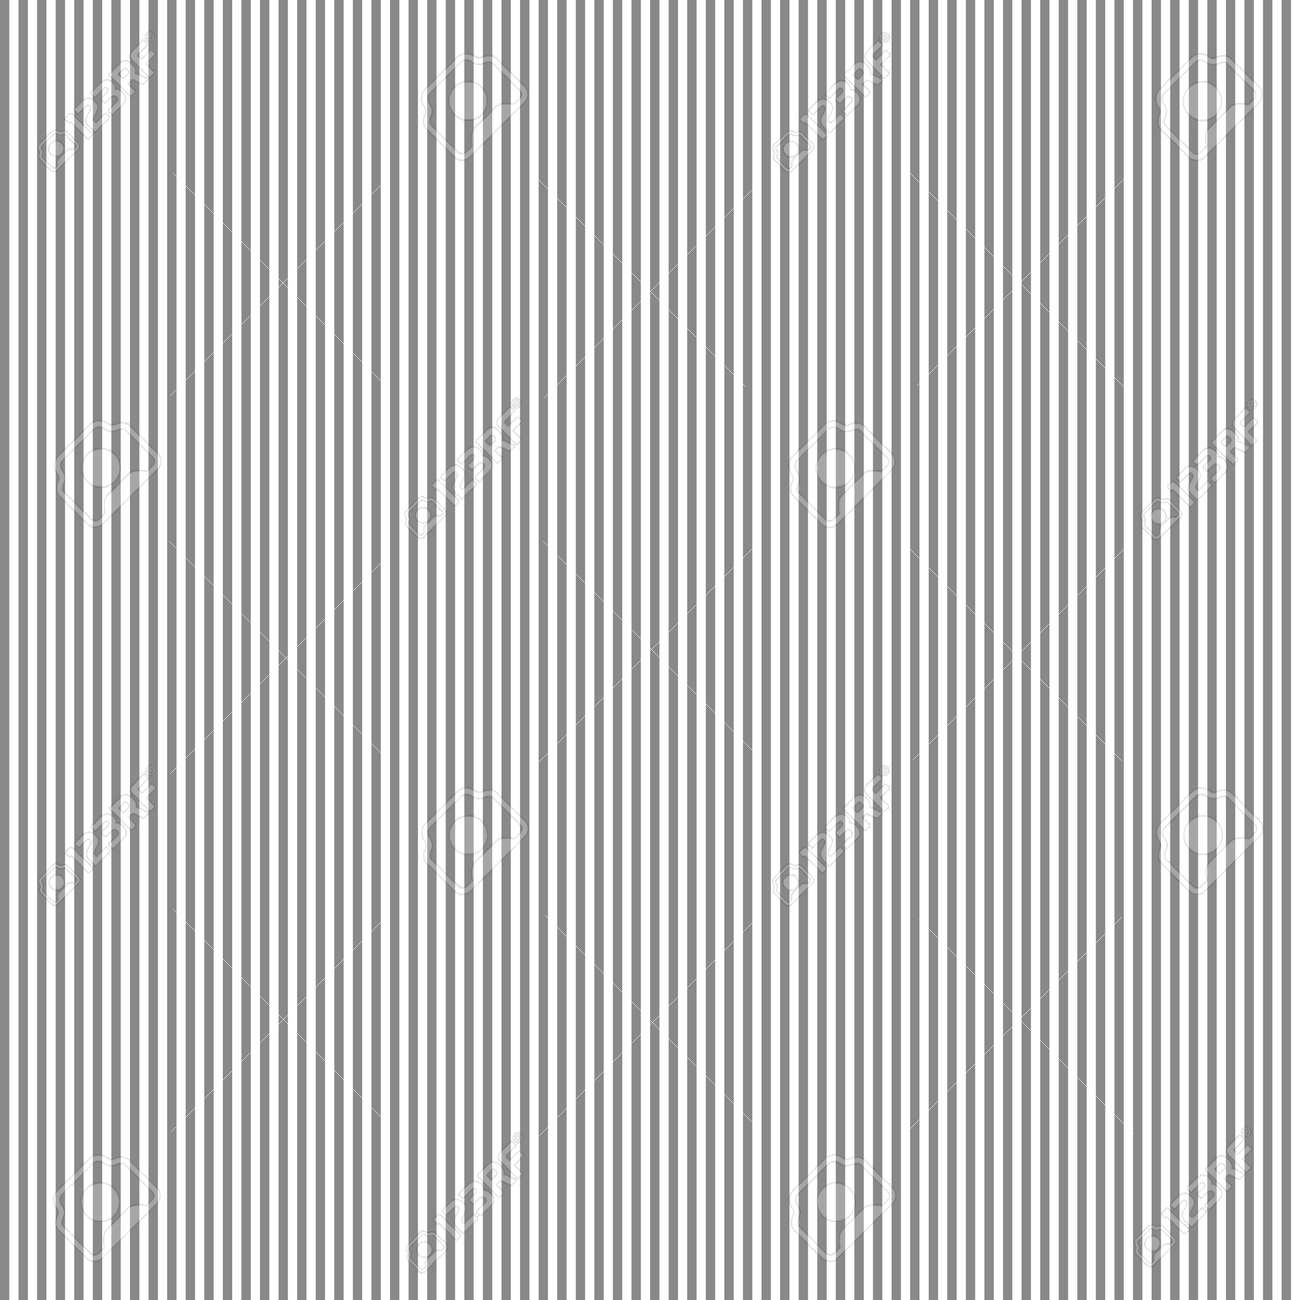 Simple stripe-extra-fine. Seamless pattern. Material for wallpaper and wrapping paper. Textile design. - 169494376